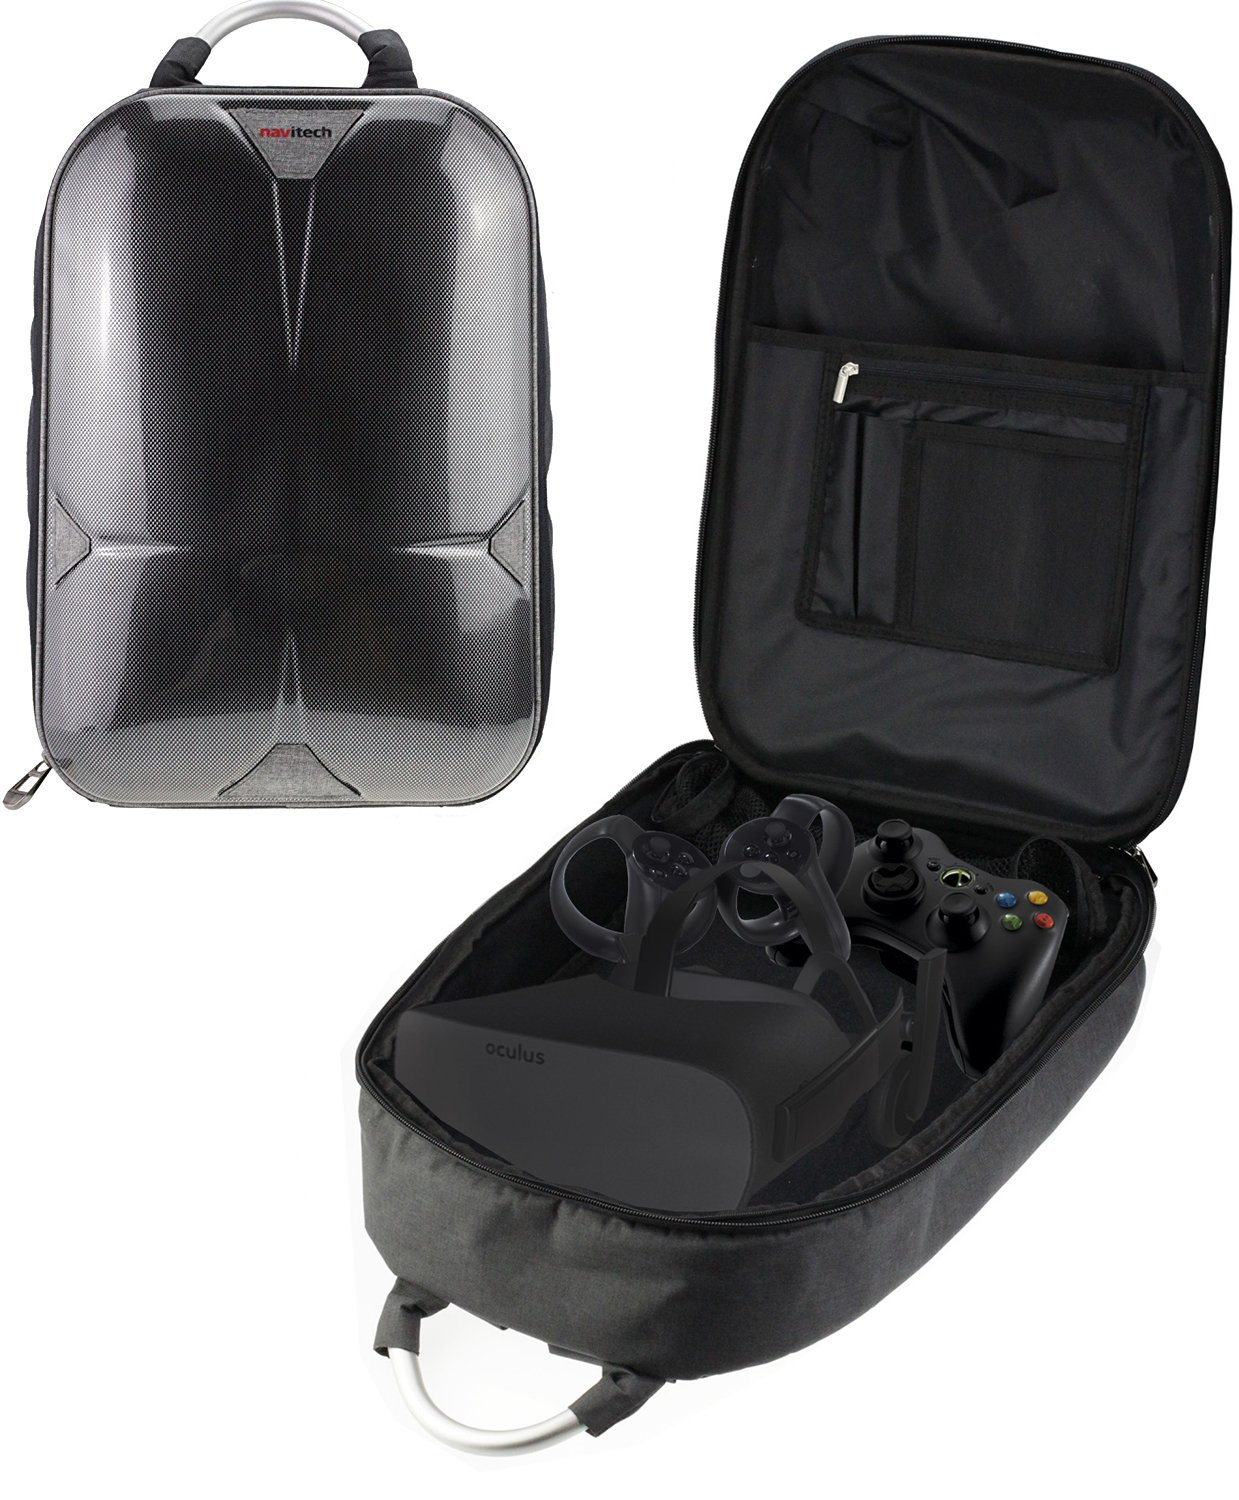 Navitech Rugged GreyBackpack / Rucksack / Travel Case / Case For The Oculus Rift + Oculus Touch Controller